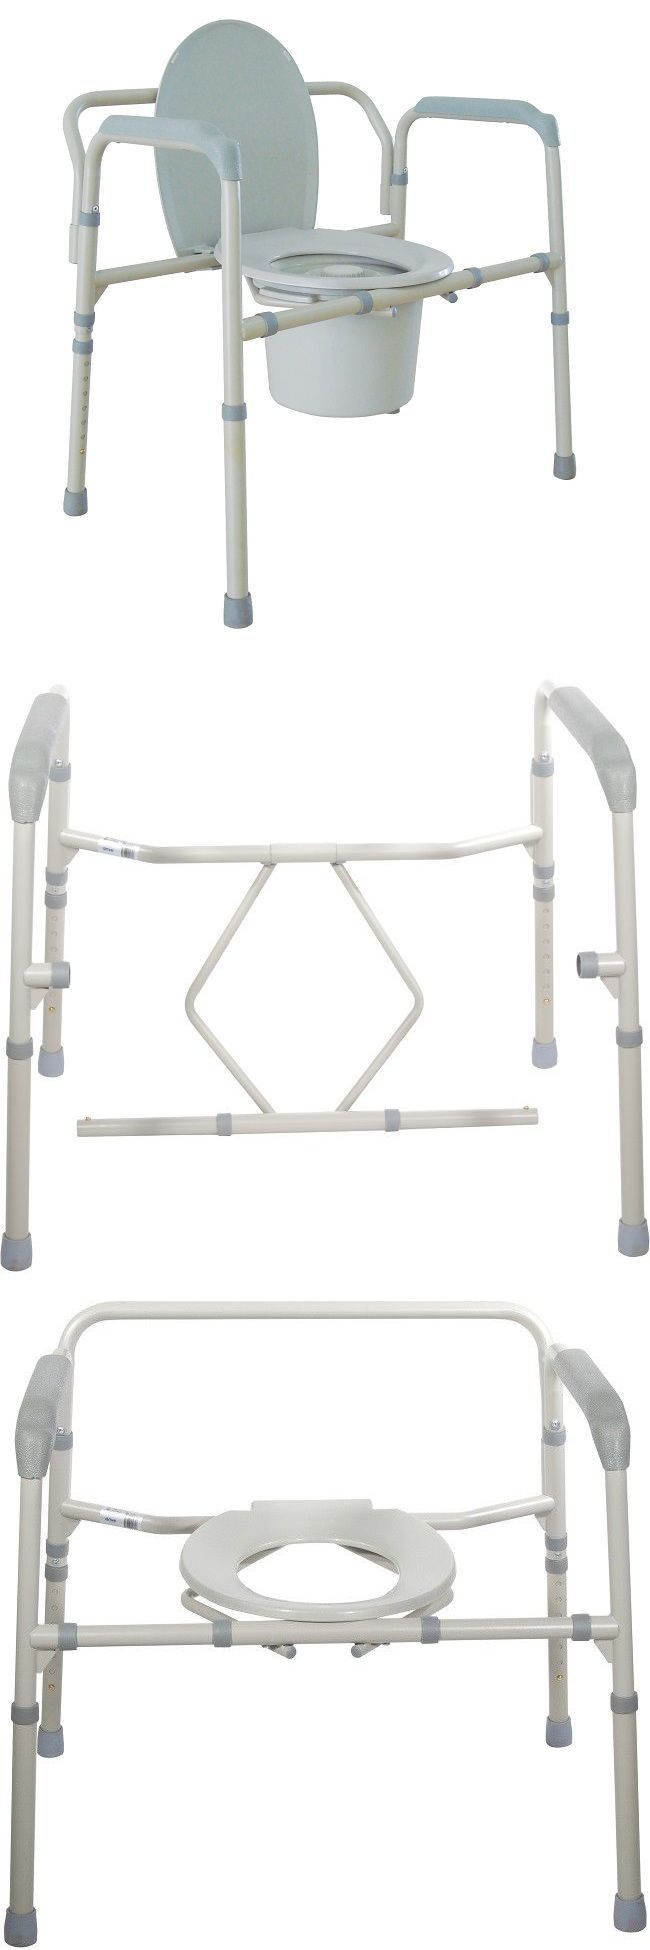 Portable commode folding bedside handicap adult toilet potty chair - Toilet Frames And Commodes Bedside Toilet Seat Medical Commode Bariatric Chair Folding Portable Adult Potty